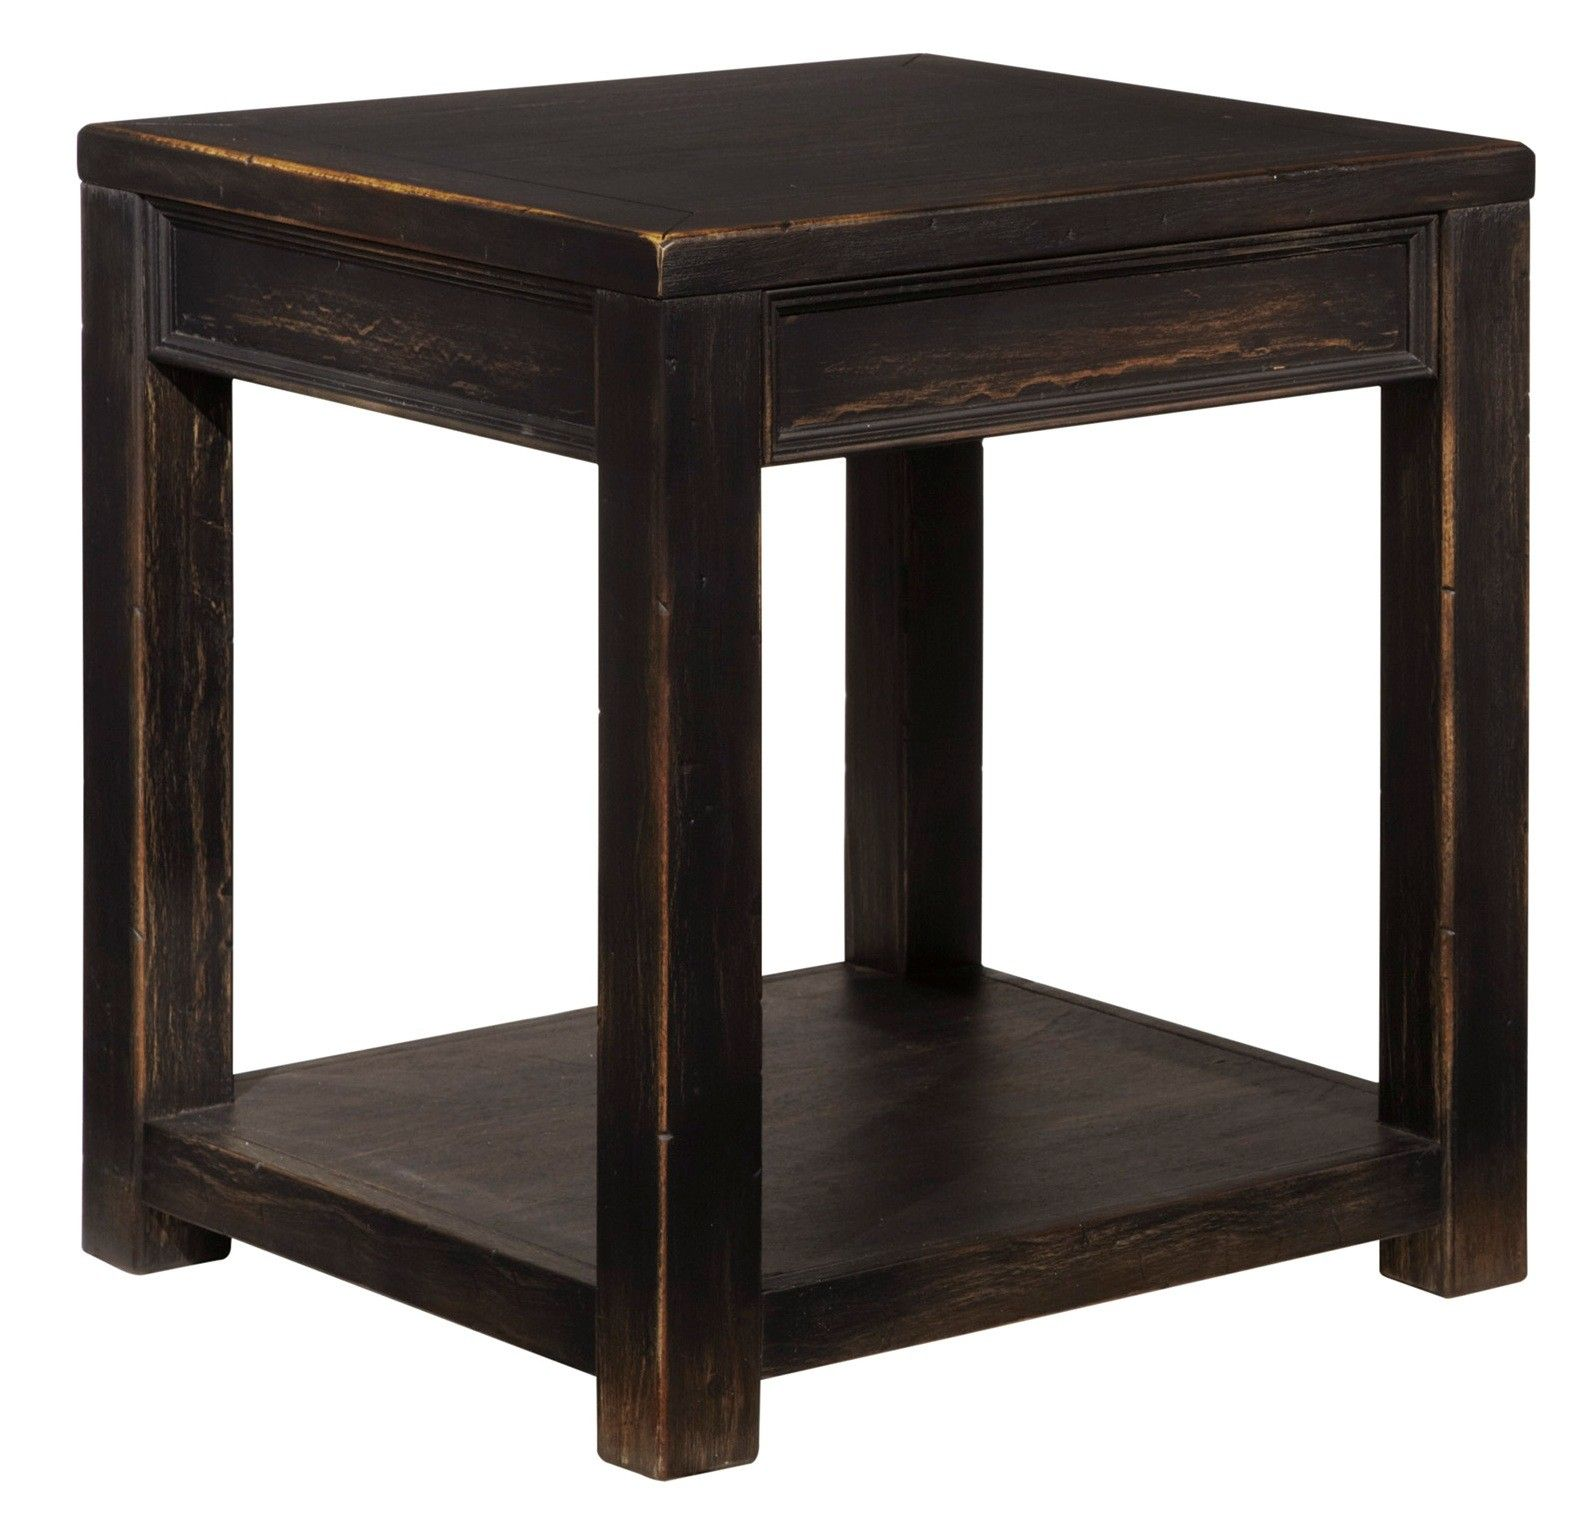 Gavelston Black Square End Table End Tables Black End Tables